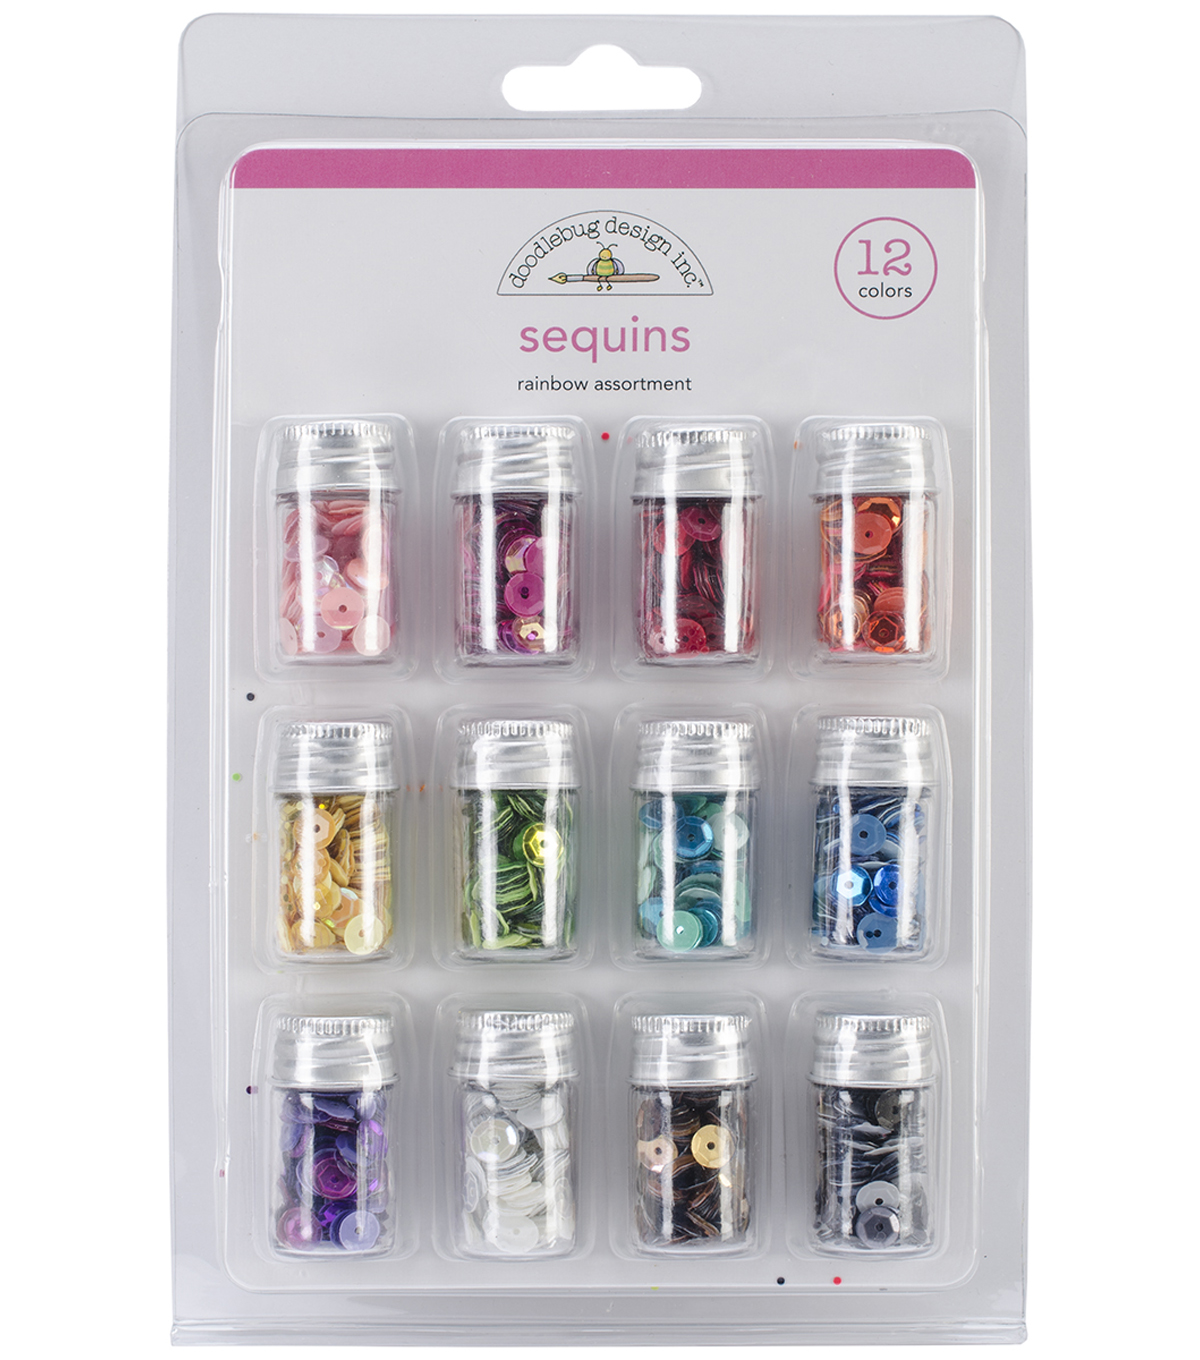 Kraft In Color sequins Assorted-Rainbow Pack